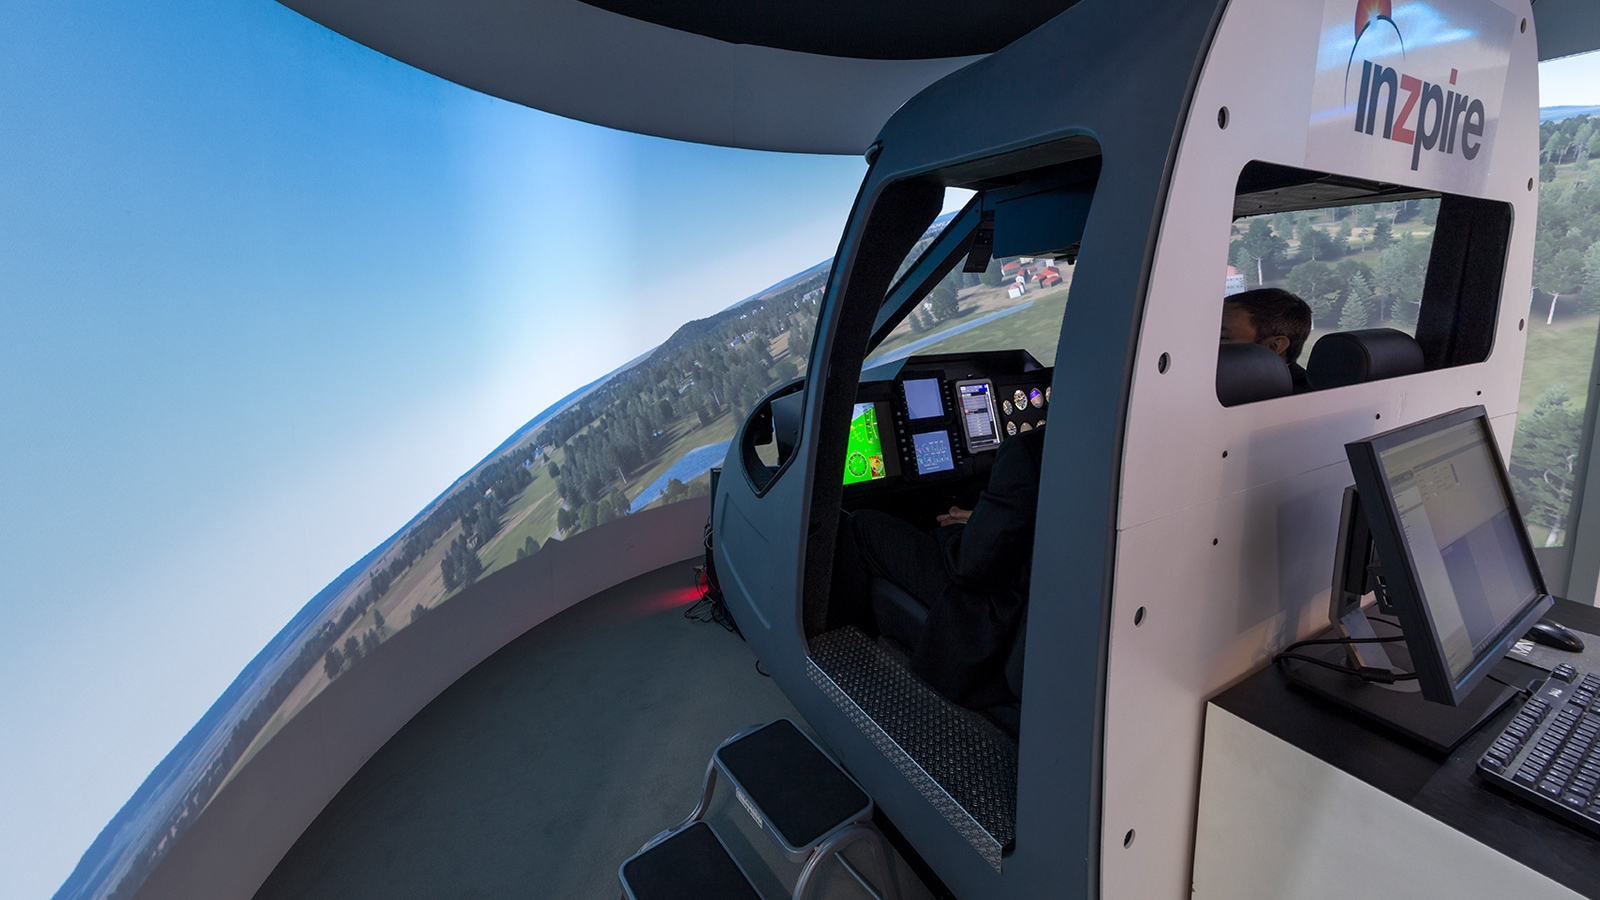 Helicopter Simulators Inzpire